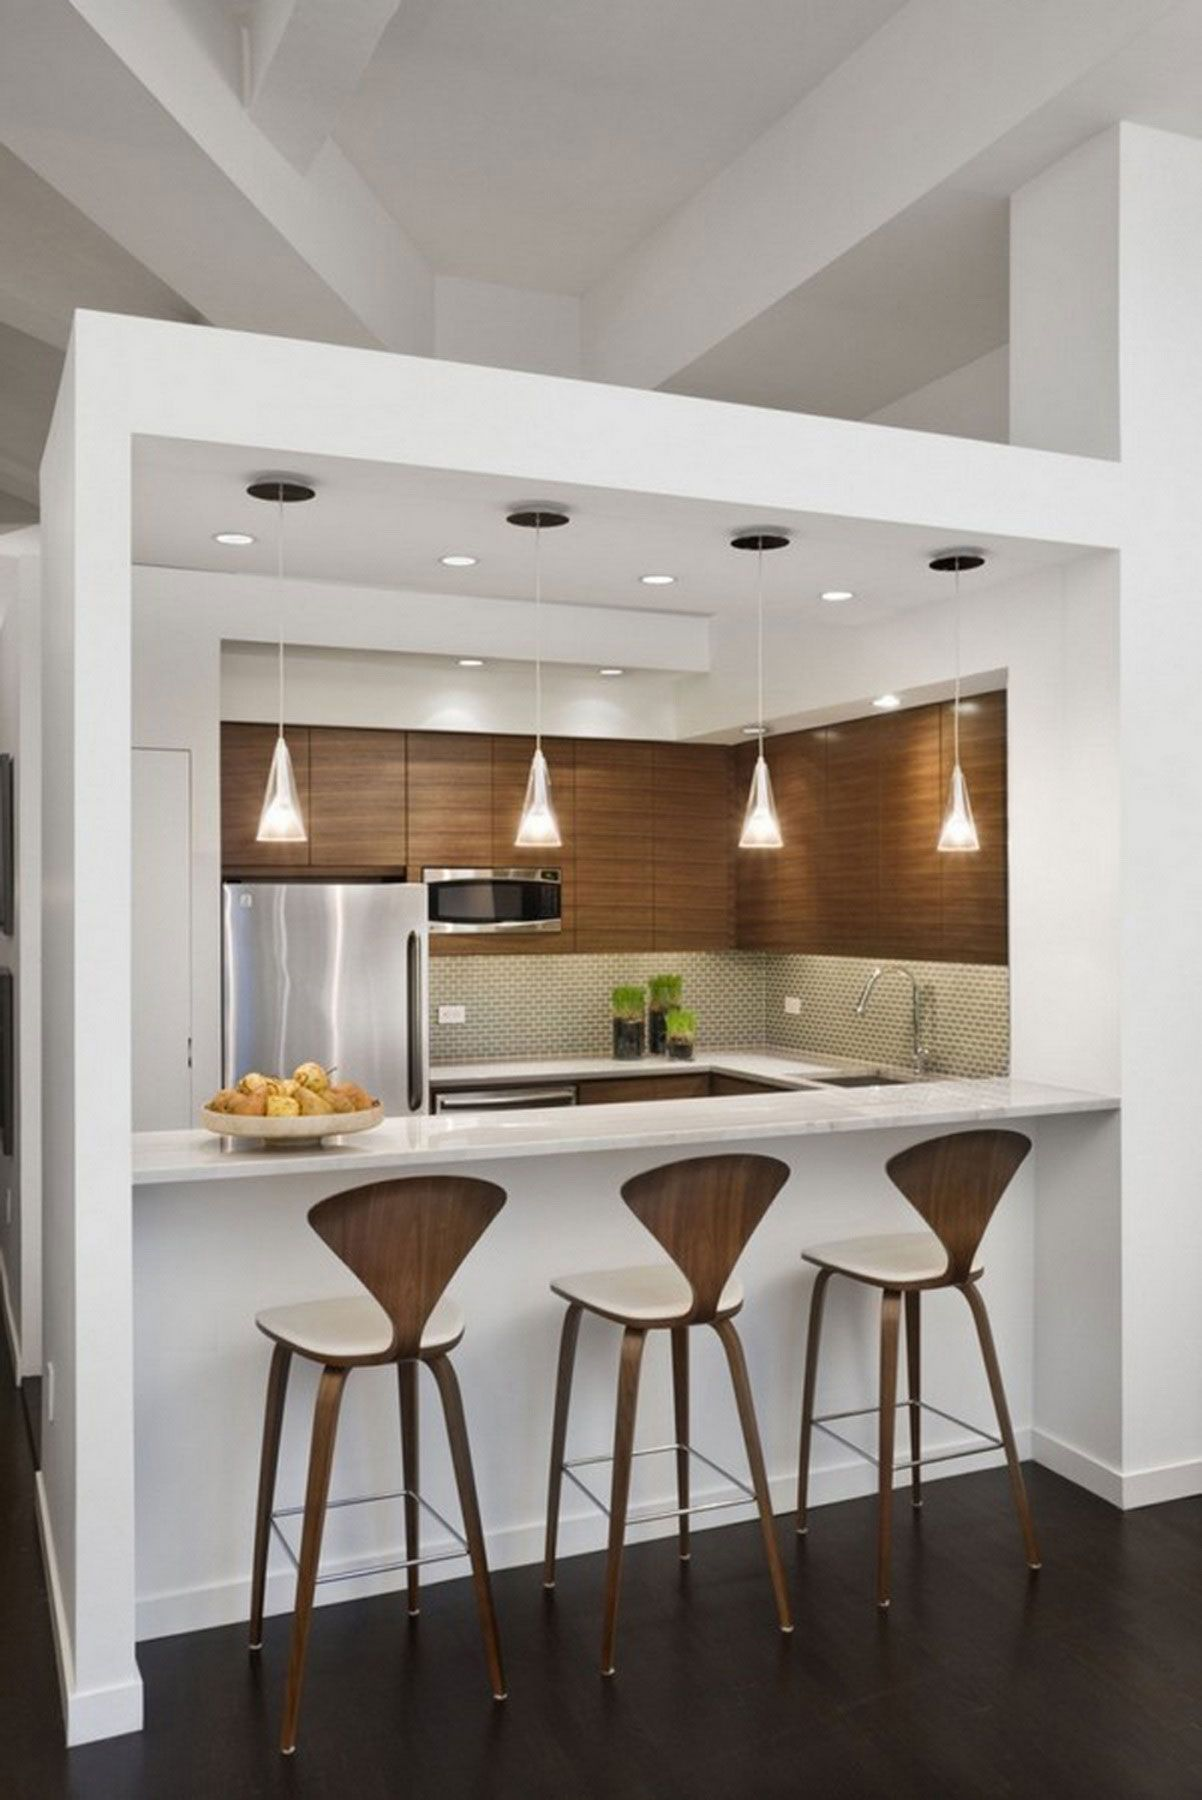 small kitchen design Check Out Small Kitchen Design Ideas What these small kitchens lack in space they